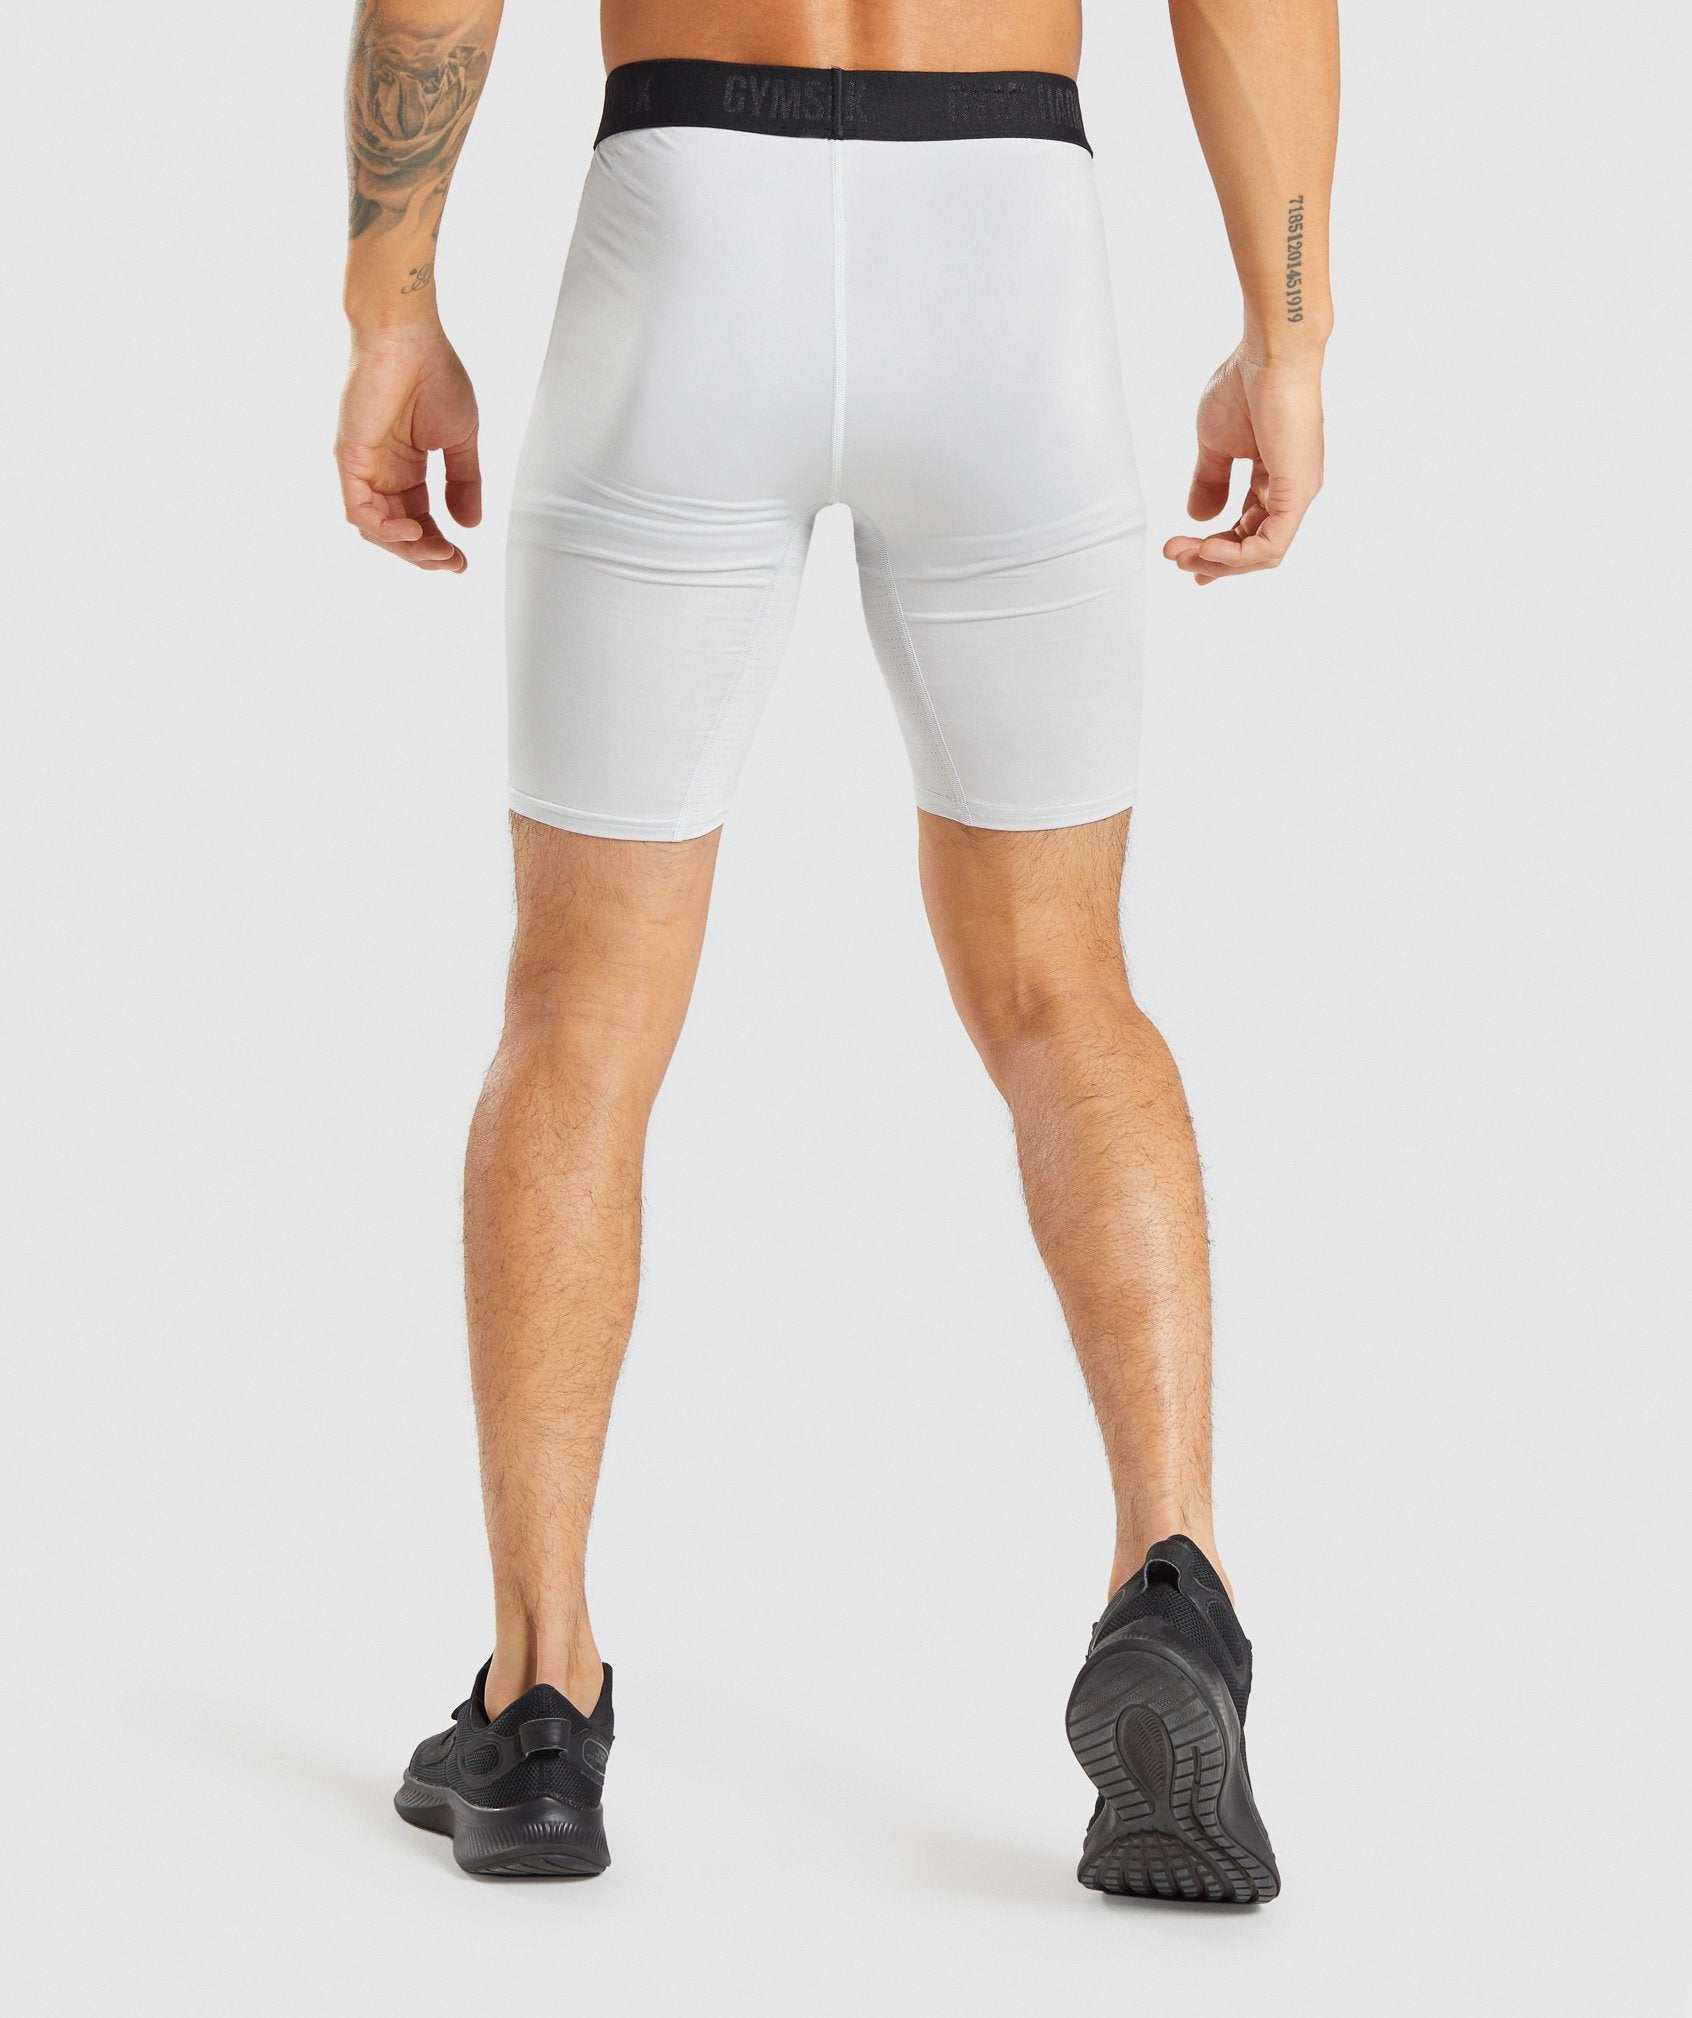 Classier: Buy Gymshark Element Baselayer Shorts - Light Grey - Gymshark